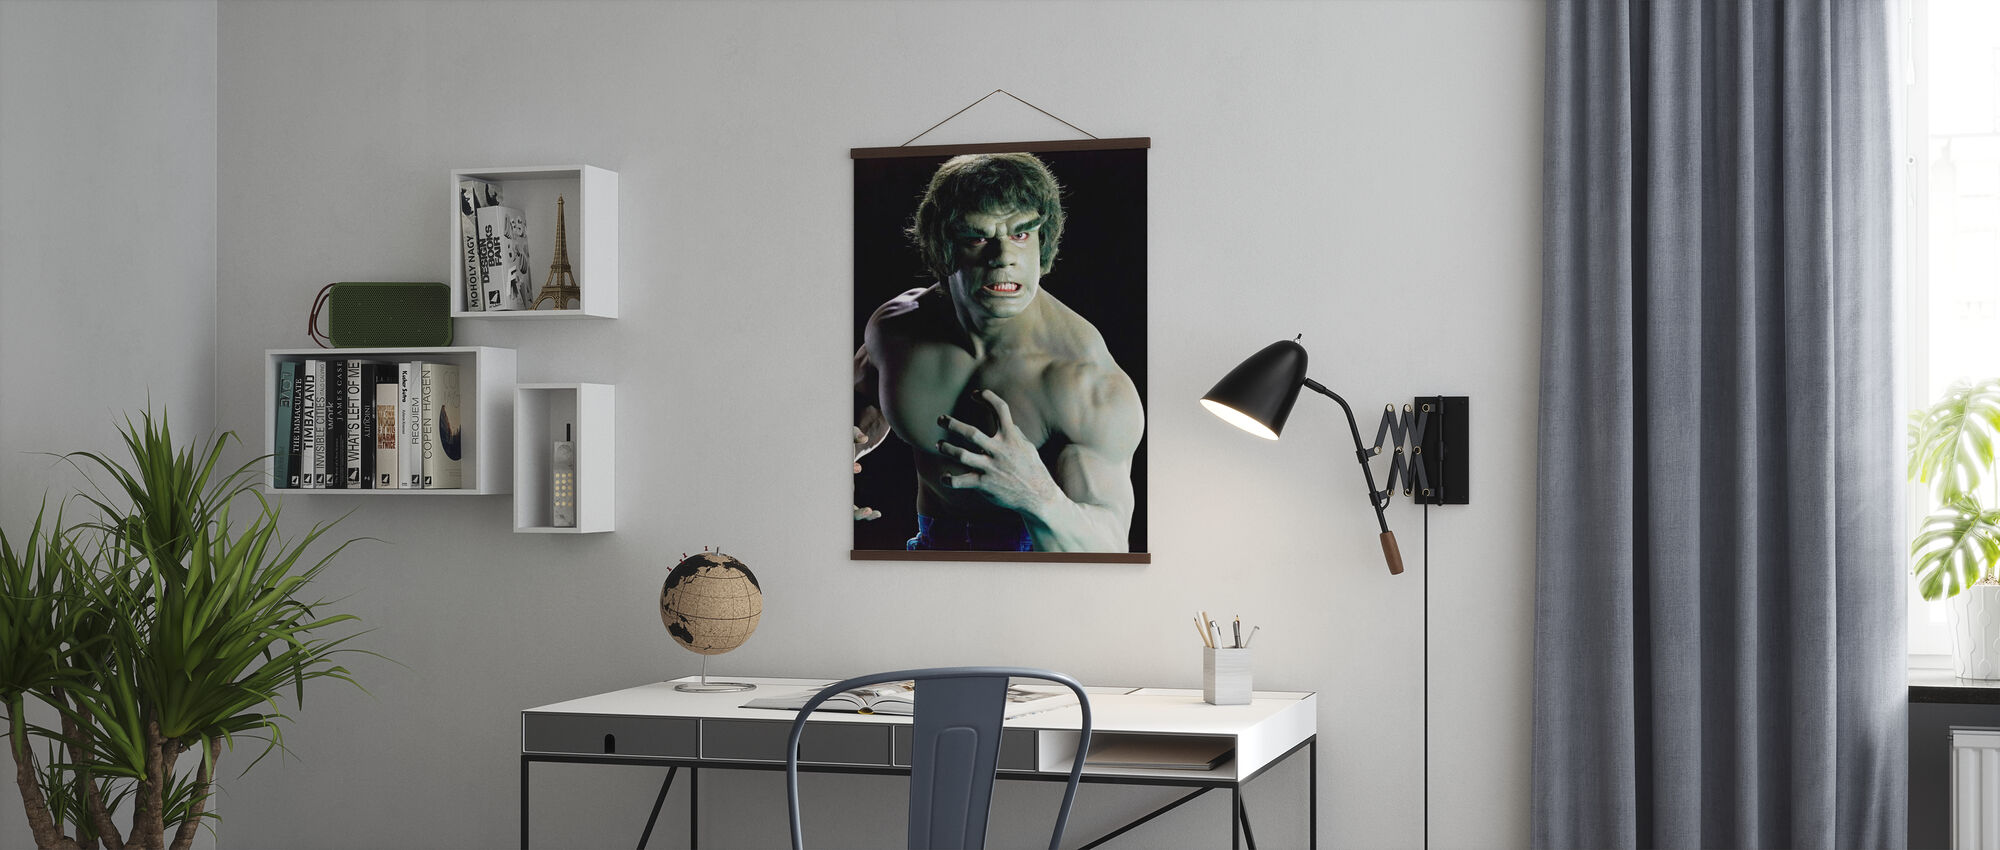 Incredible Hulk the TV - Poster - Office